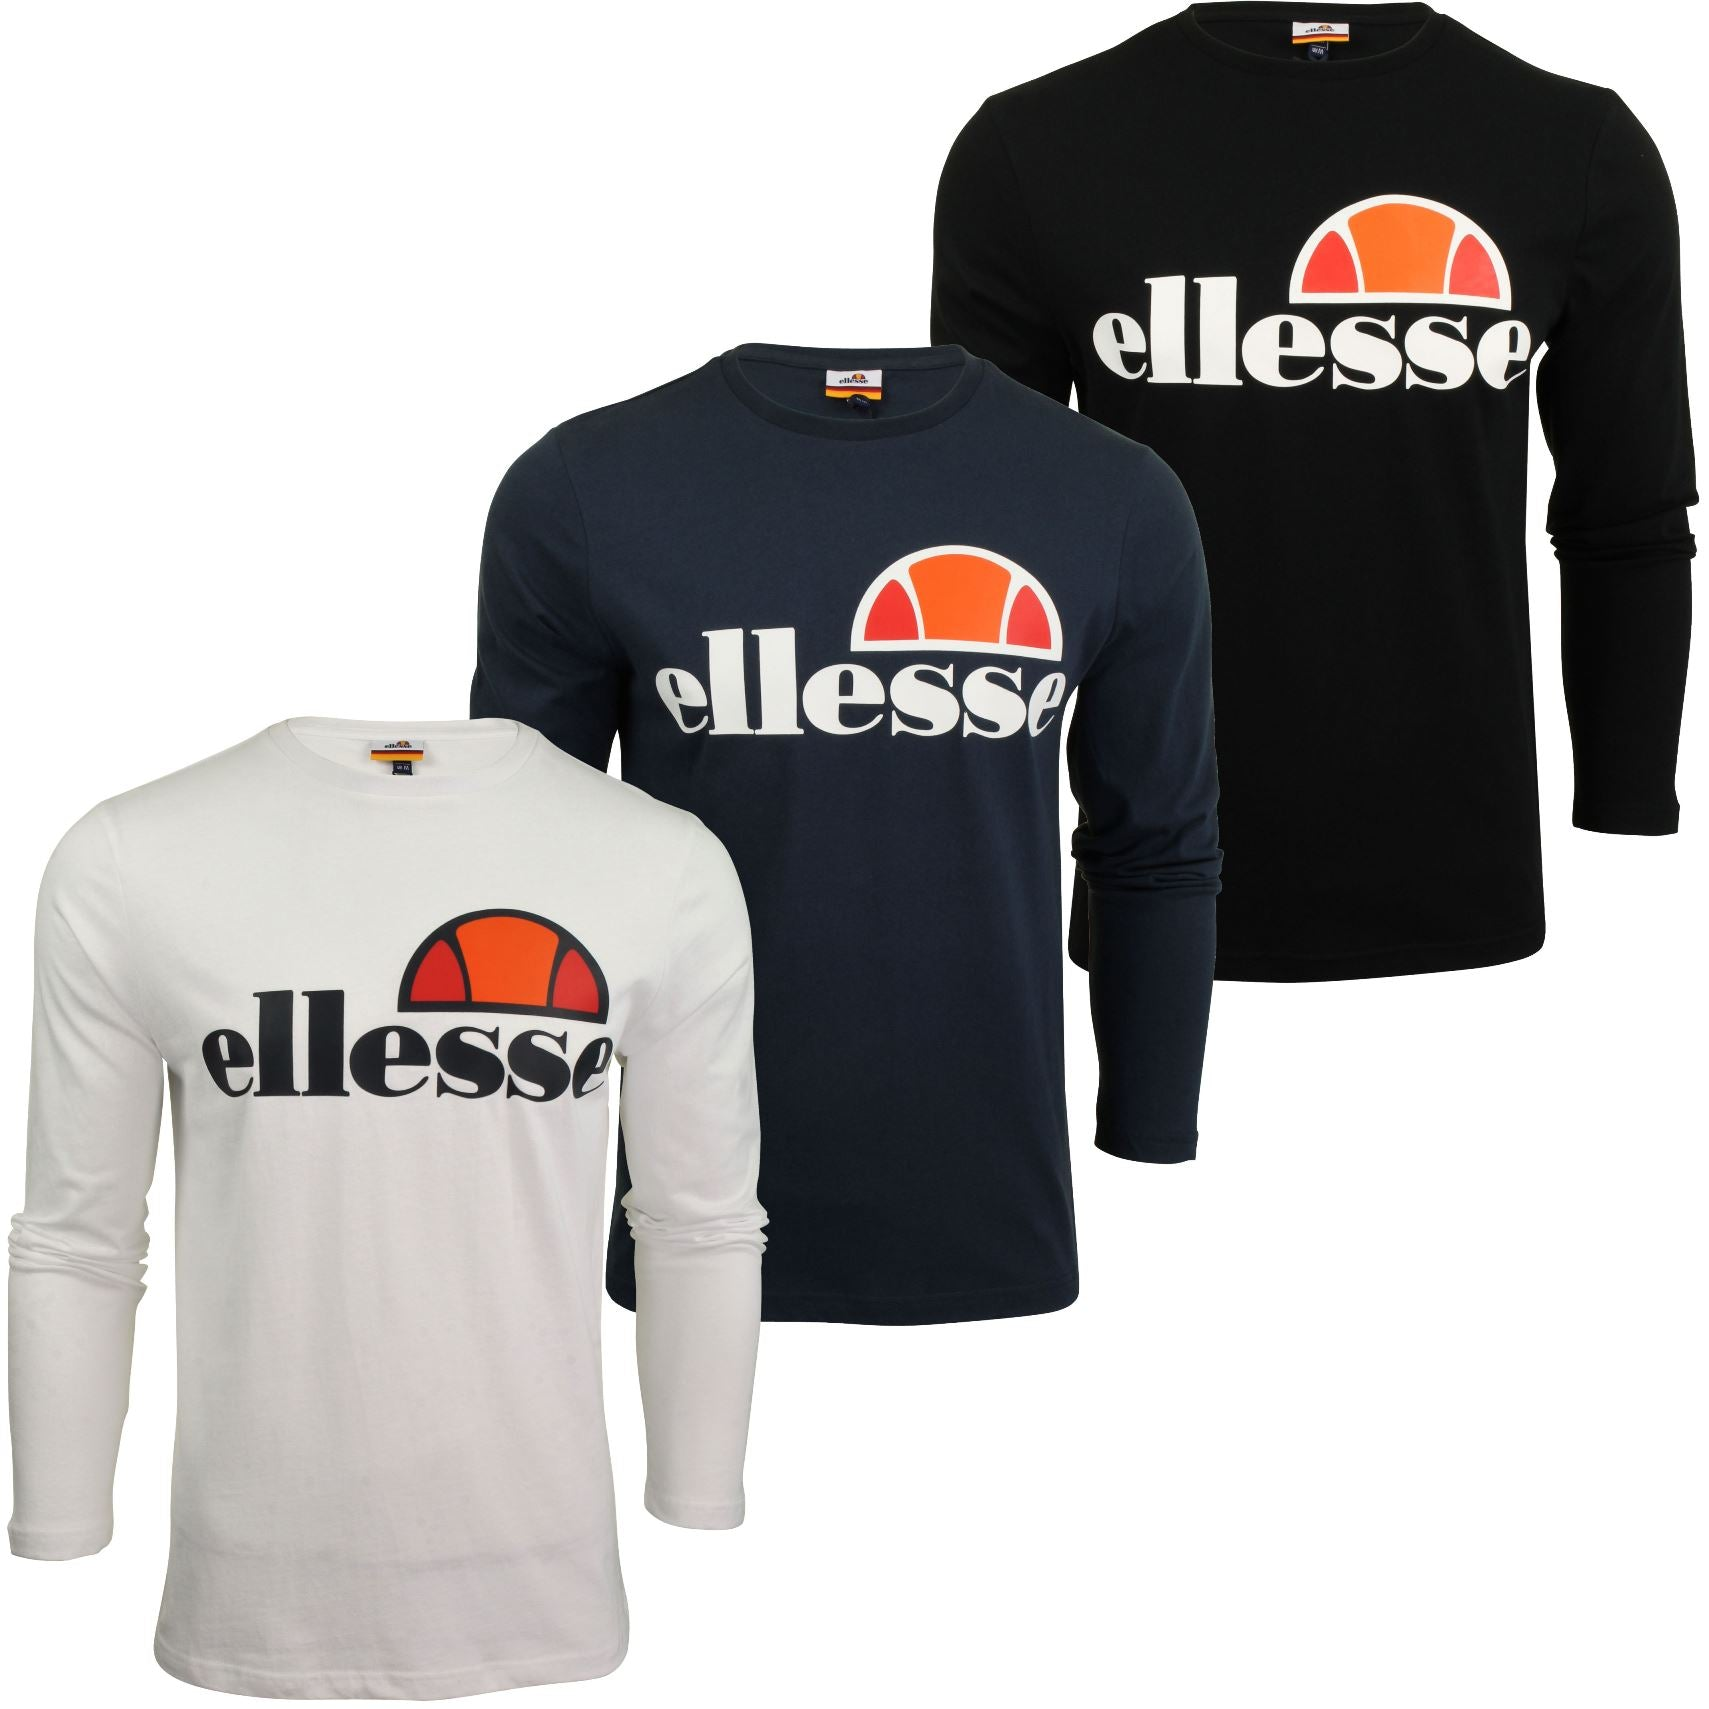 Mens Ellesse Long Sleeved T-Shirt 'Grazie'-Main Image